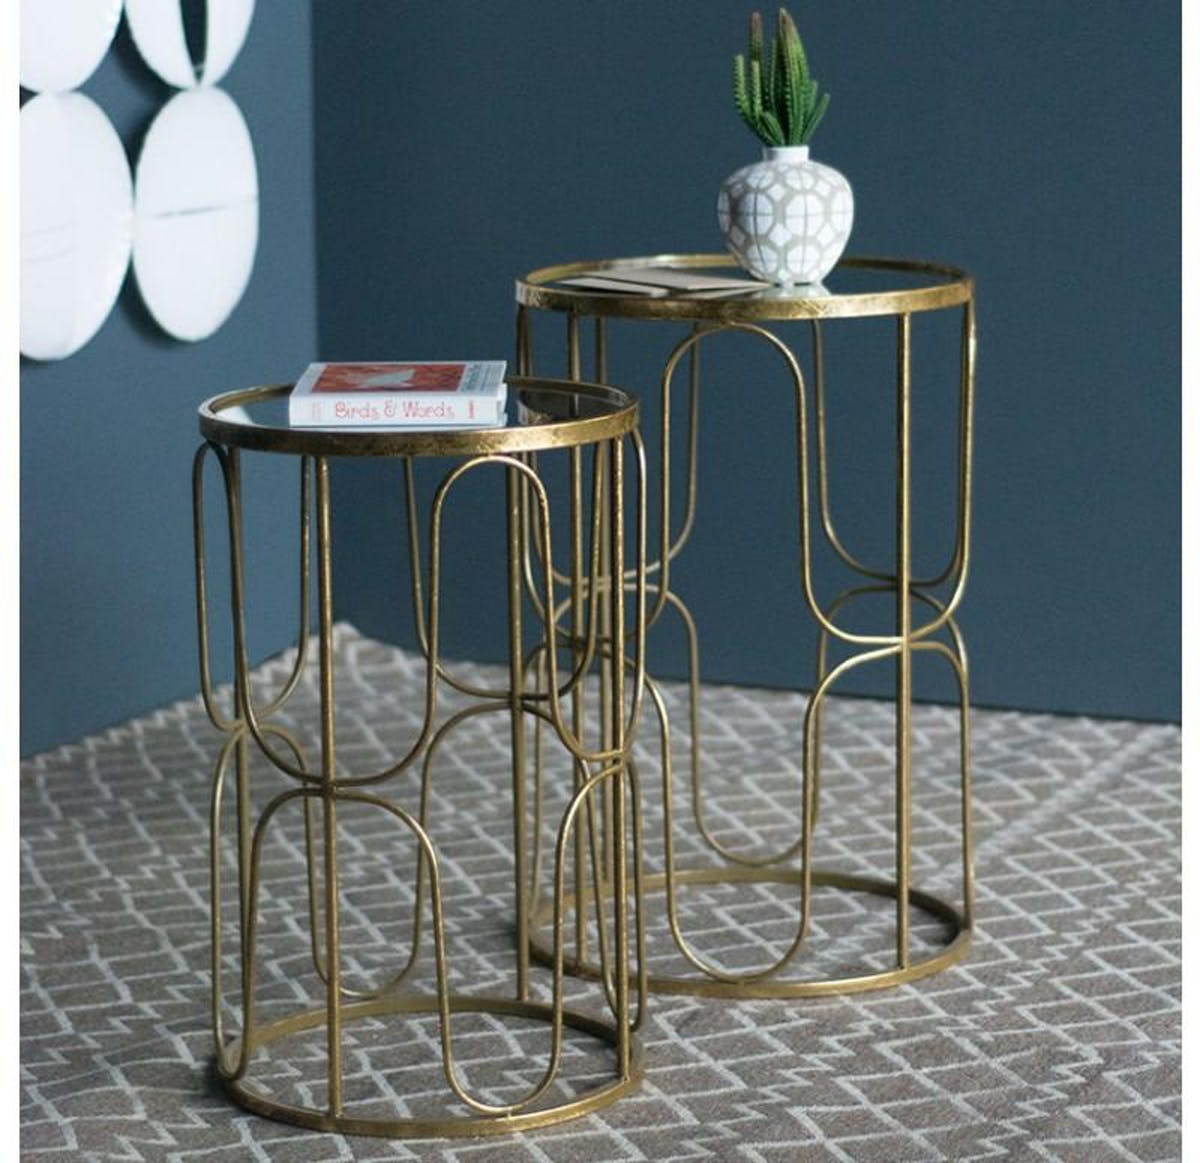 gold leaf design group society accent table set modish tables faux leather dining chairs classic furniture vanity oak side with drawer rope lamp target windsor chair round plastic